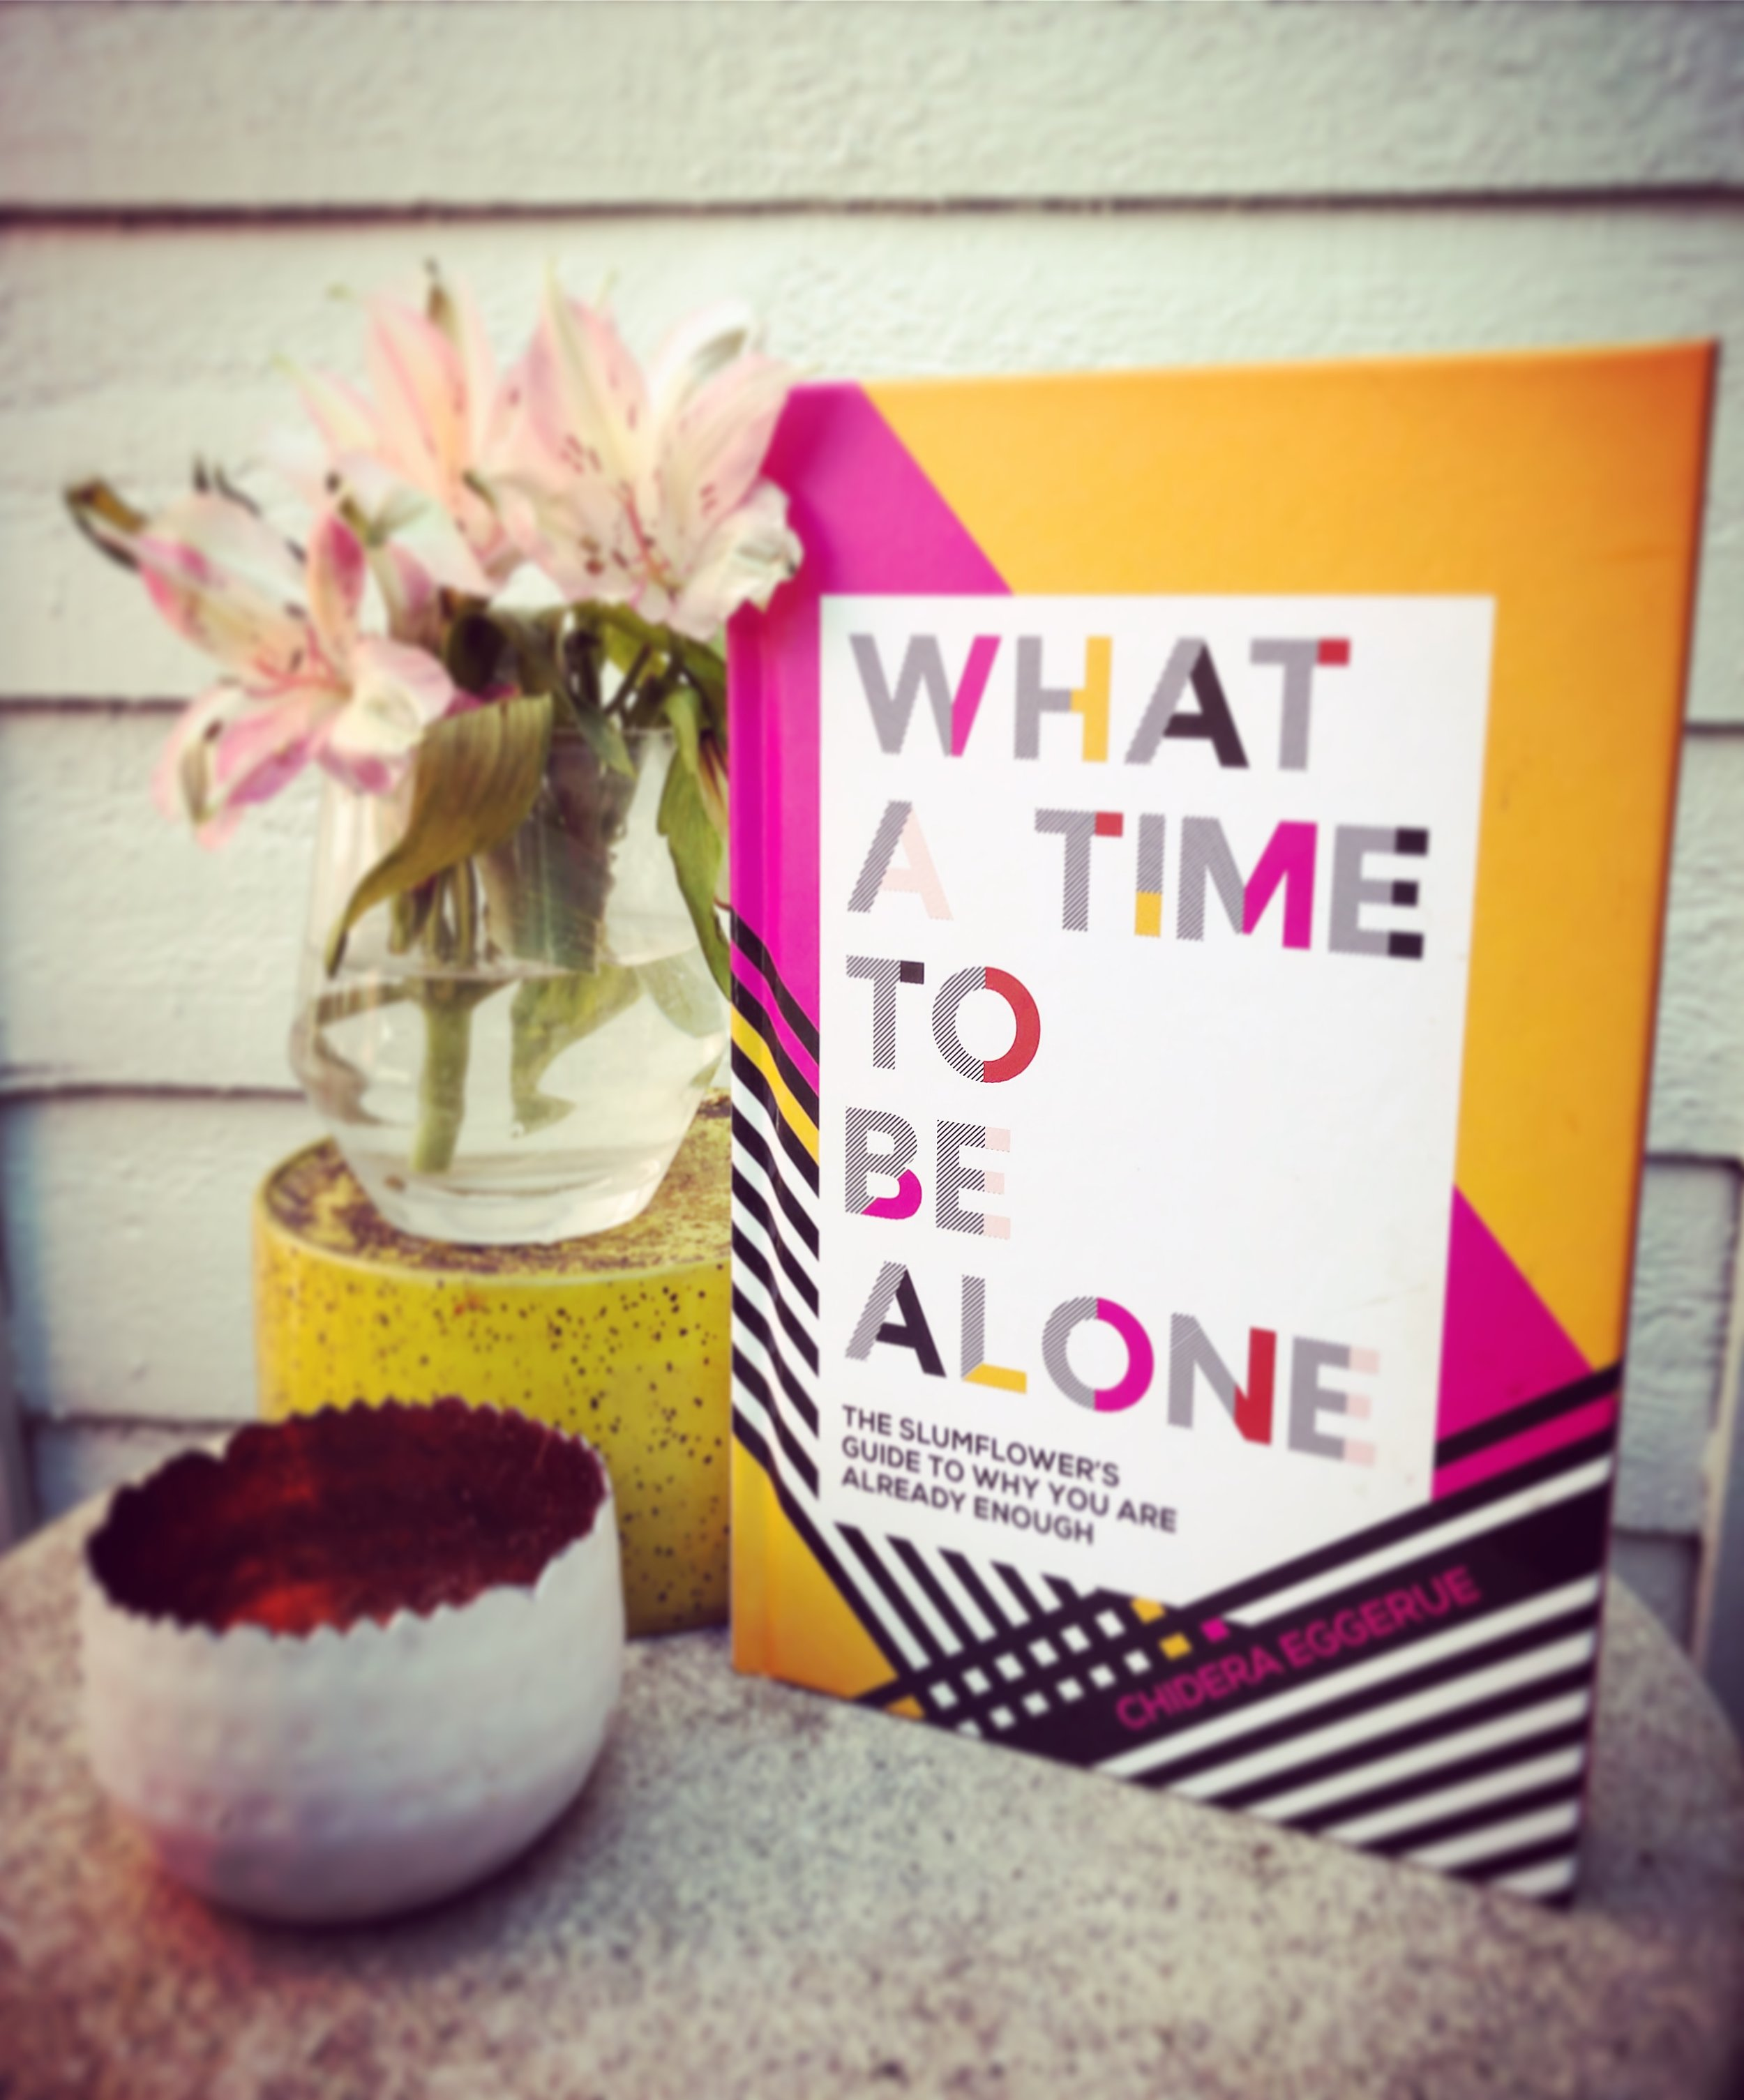 WHAT A TIME TO BE ALONE: CHIDERA EGGERUE